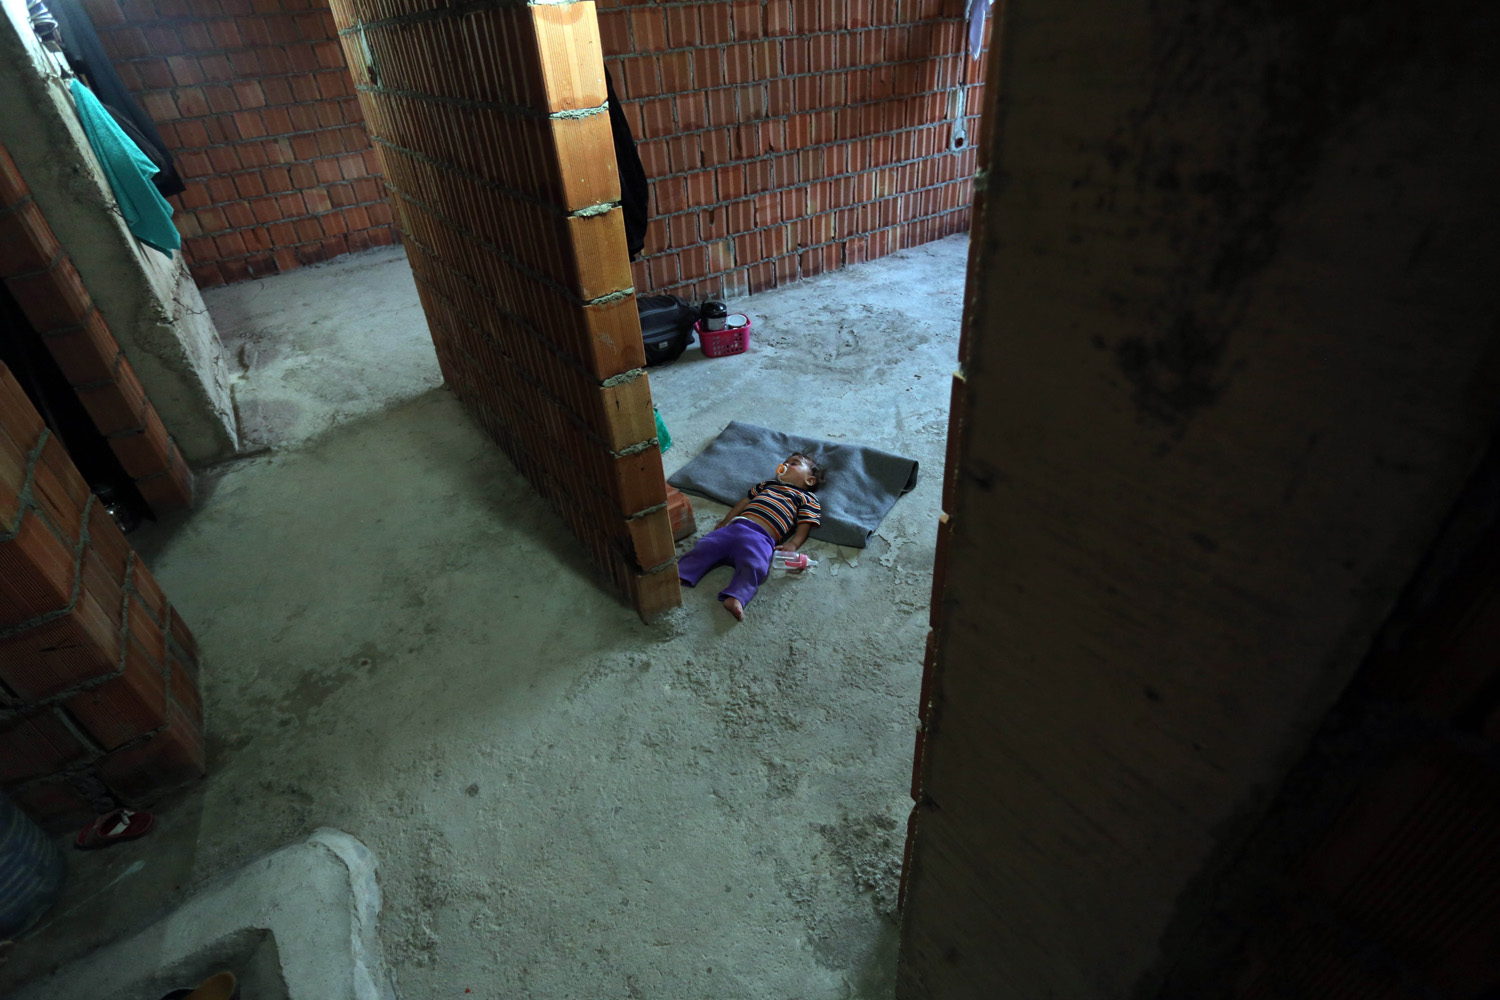 Aug. 16, 2014. Yezidis who fled their home due to the assaults of army groups led by Islamic State (IS), formerly known as ISIL, take shelter in the buildings under construction in Zakho district, a few kilometers from the Iraqi-Turkish border, Dohuk.